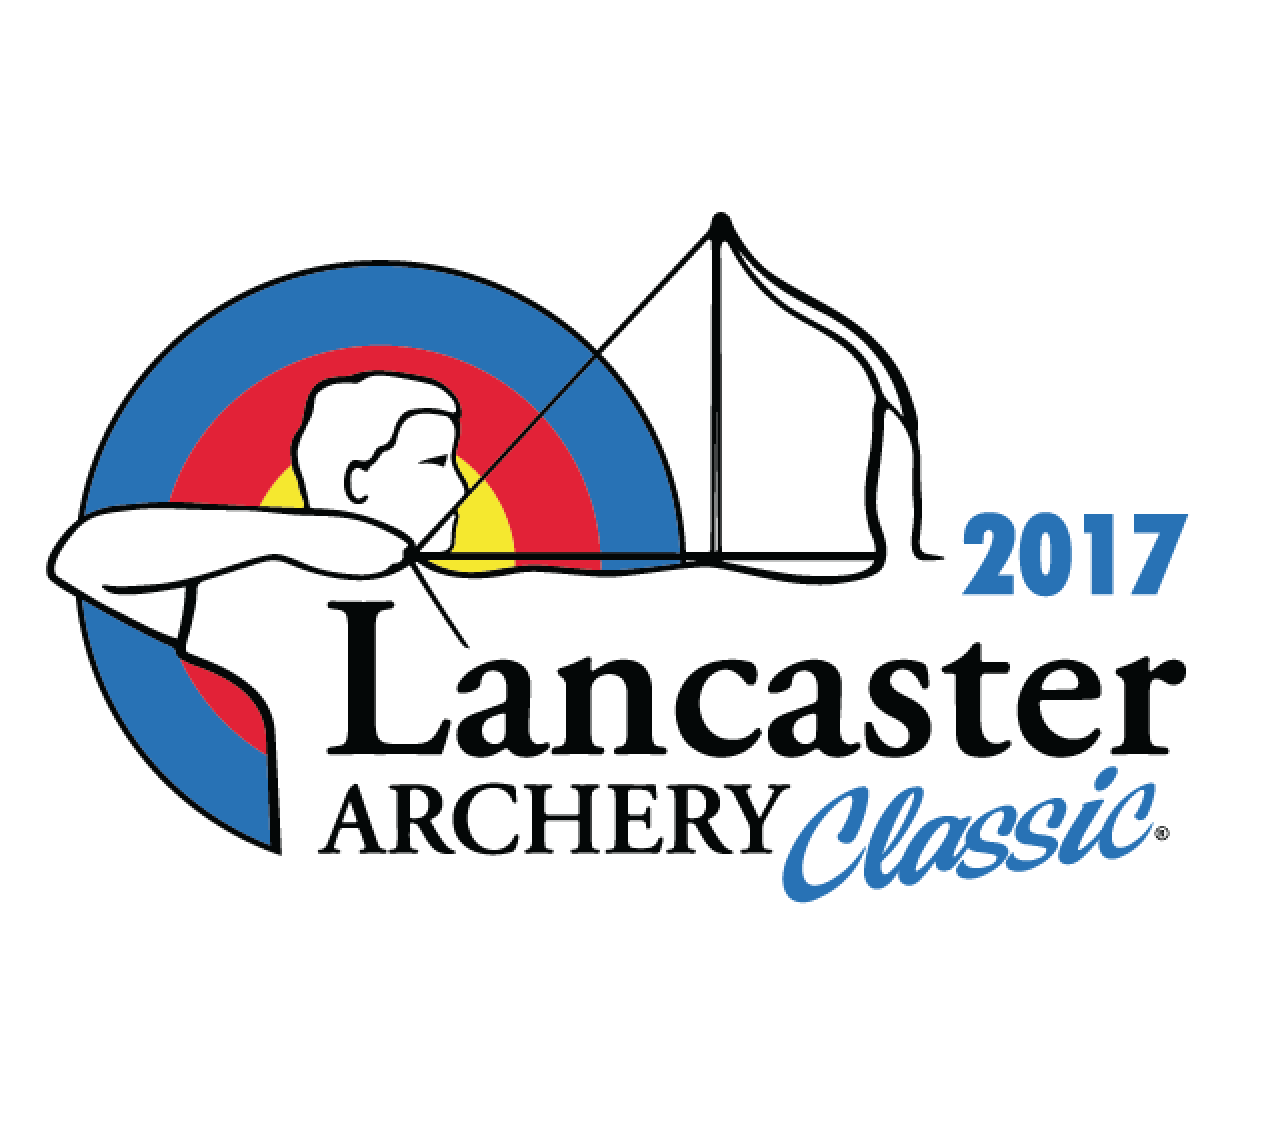 TEST - 2017 Lancaster Archery Classic - Test mobile h2h results